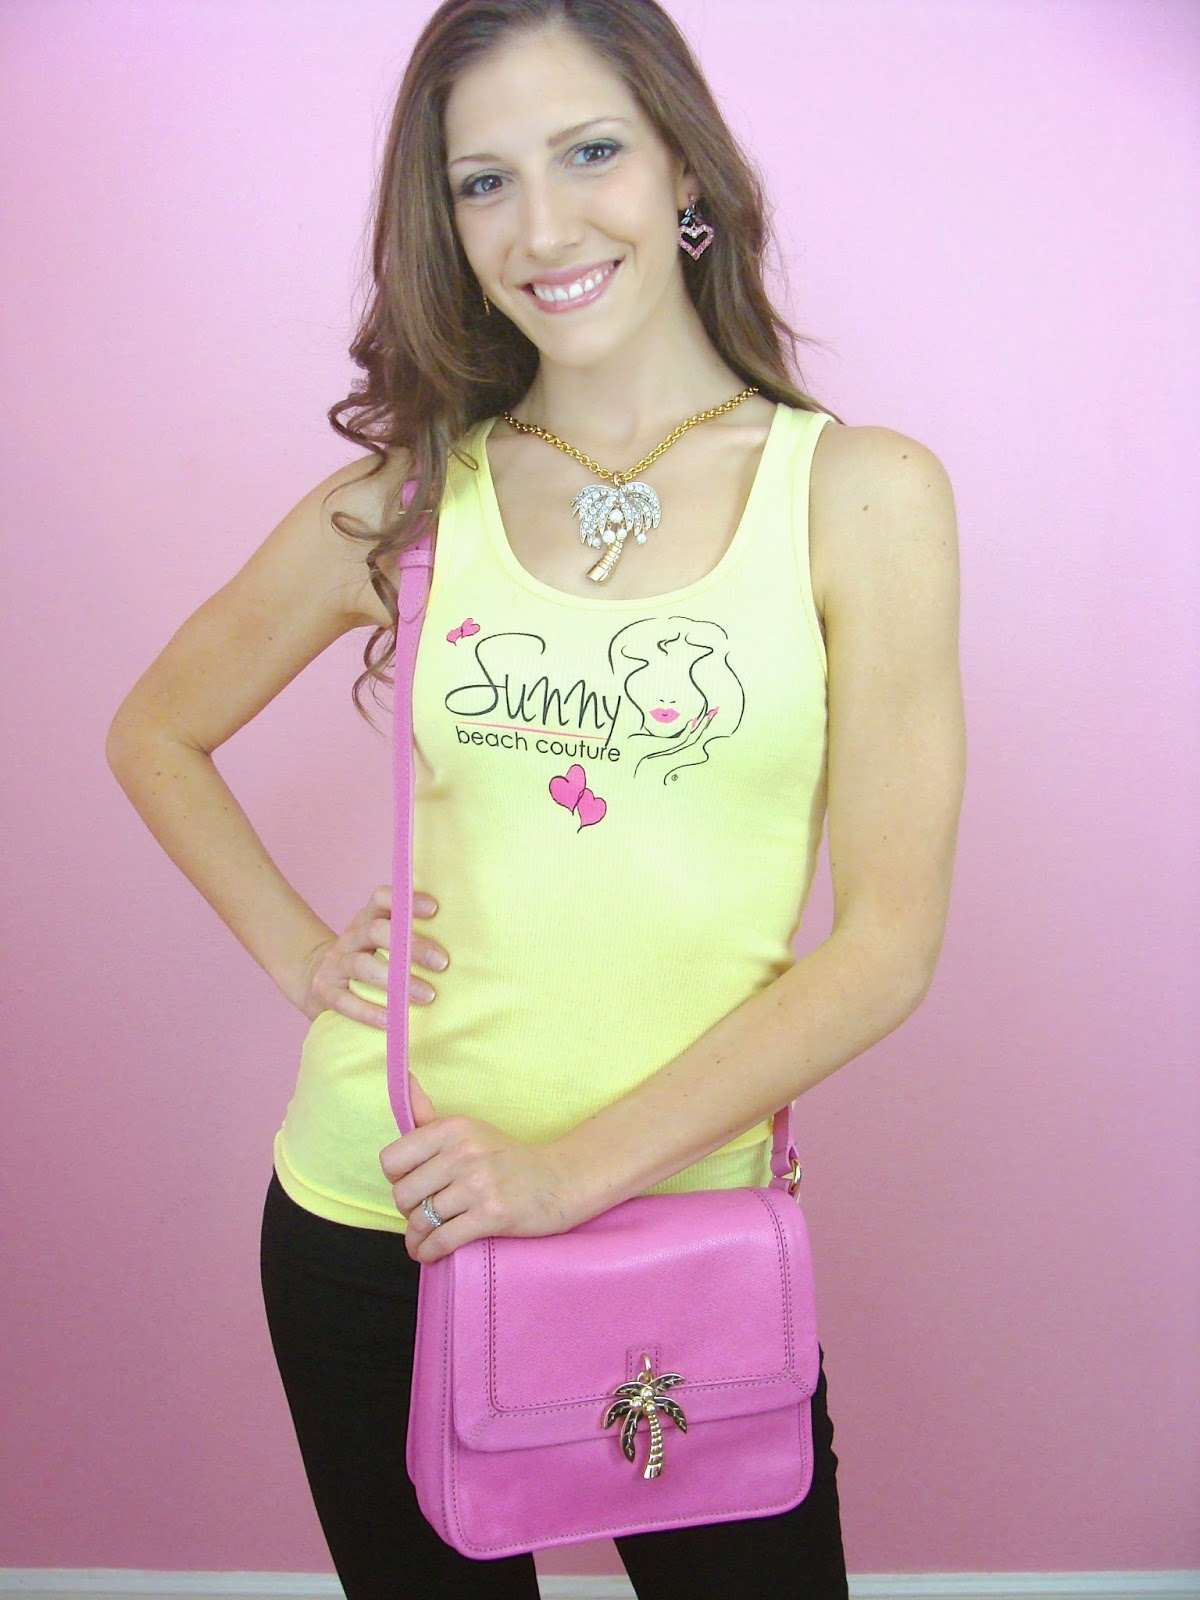 http://www.sunnybeachcouture.com/servlet/the-9759/Rib-Graphic-Tank-Top/Detail